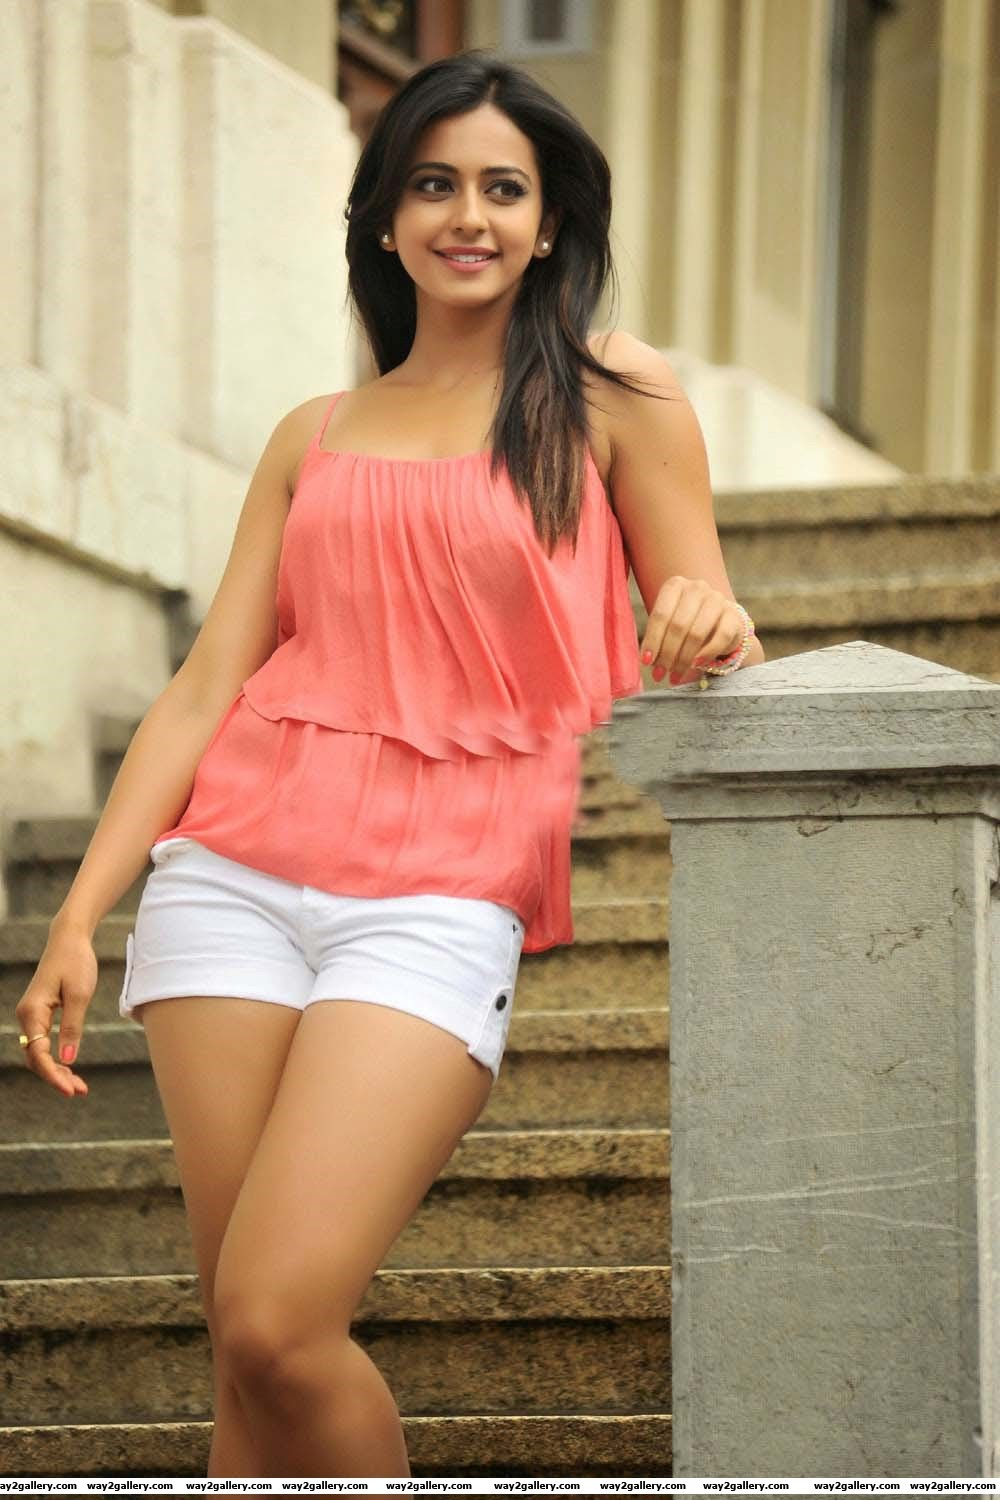 rakul preet singh photo gallery and rakul preet singh spicy gallery 13